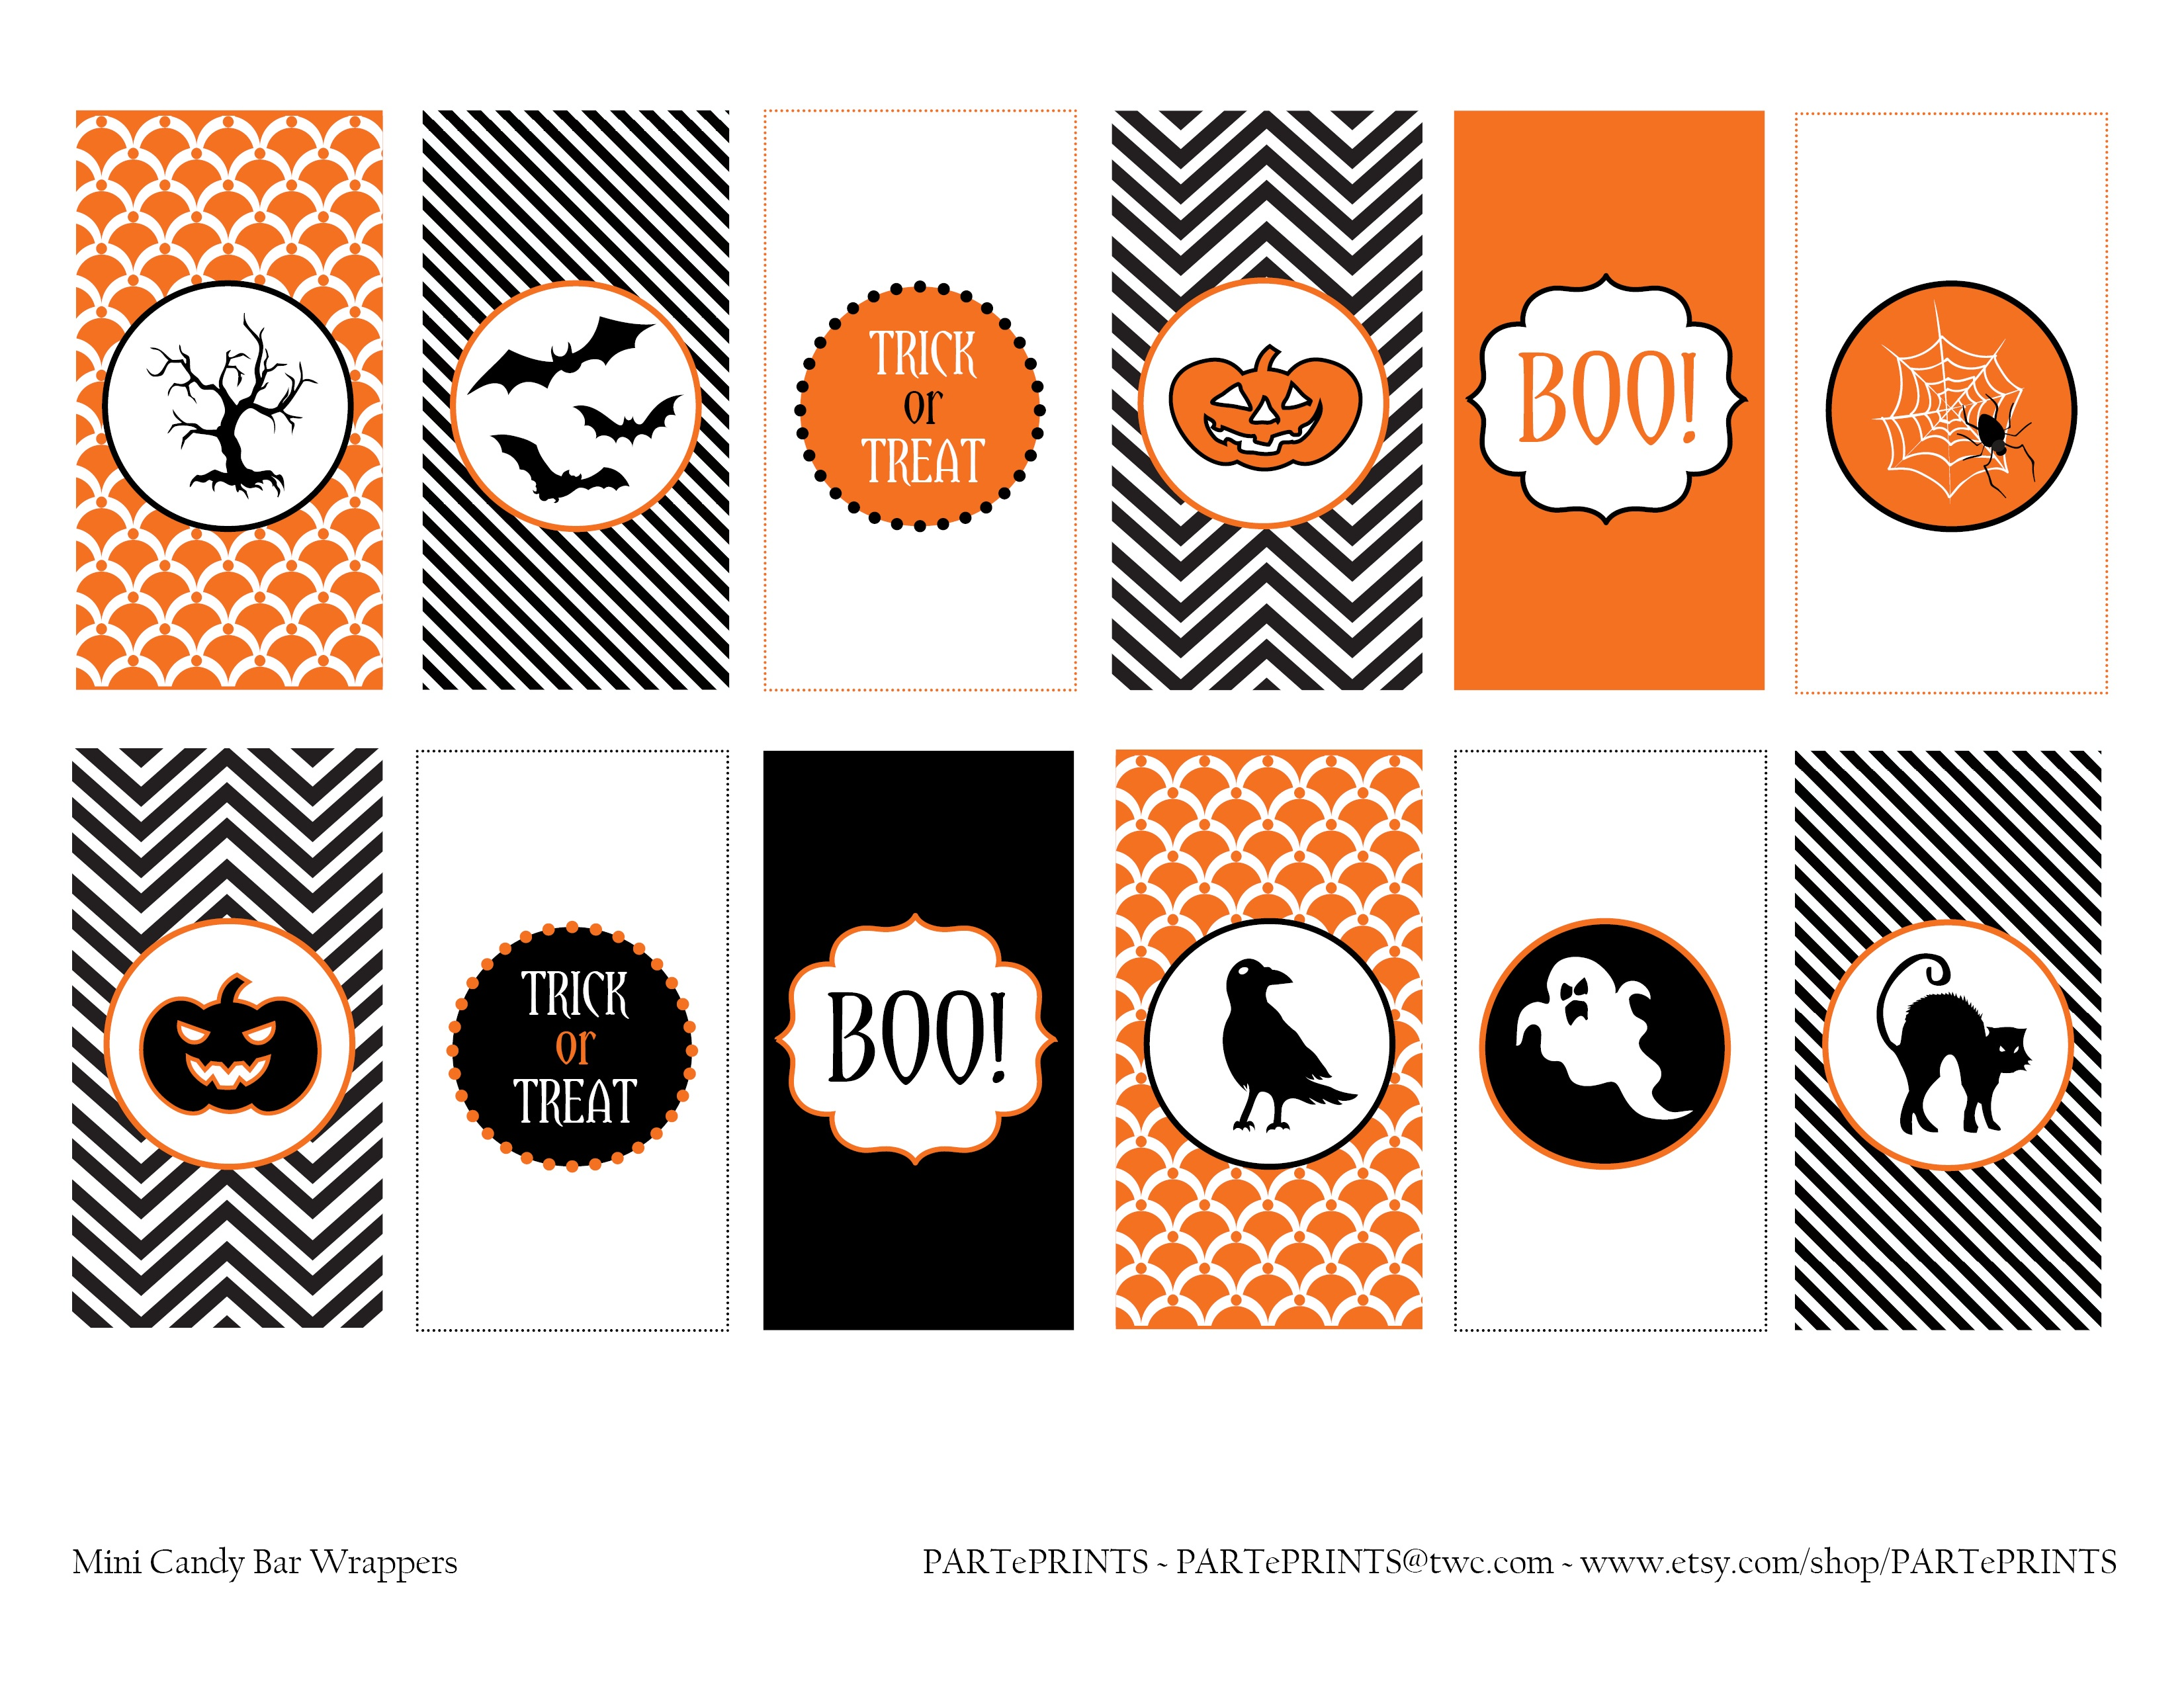 Free Halloween Printables From Parteprints   Catch My Party - Free Halloween Printables